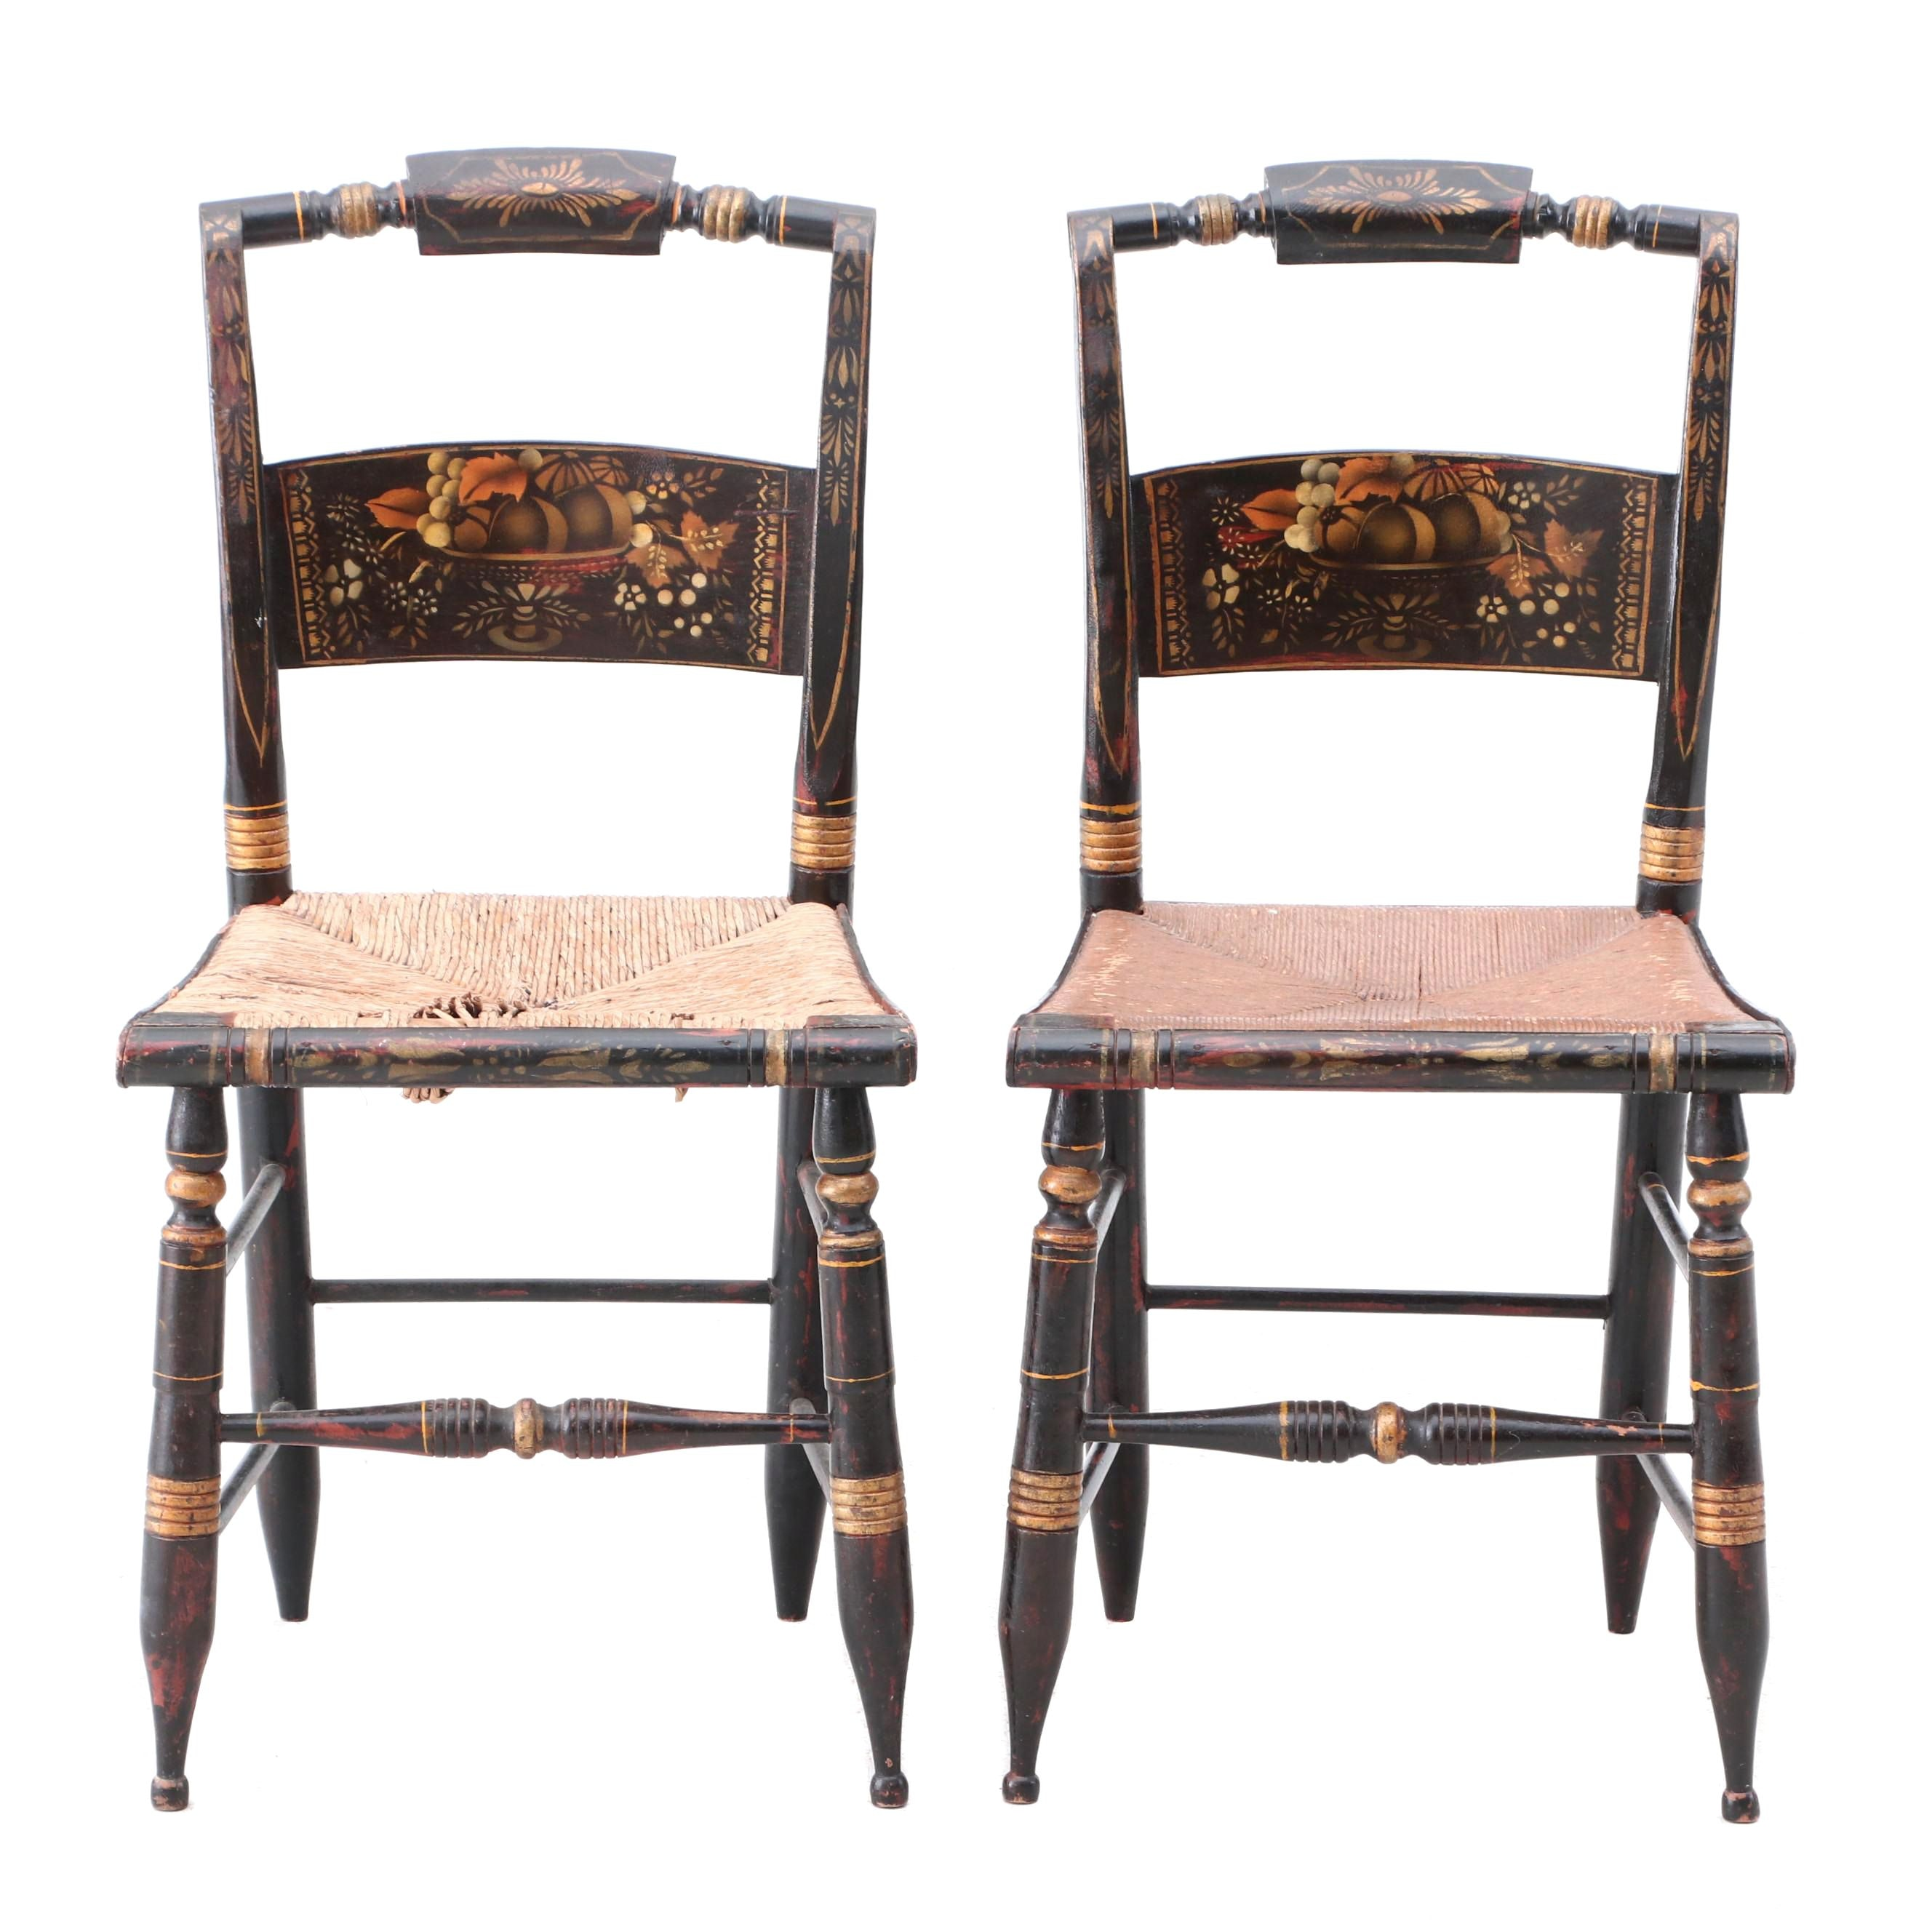 Antique Hitchcock Style Pillow Back Chairs